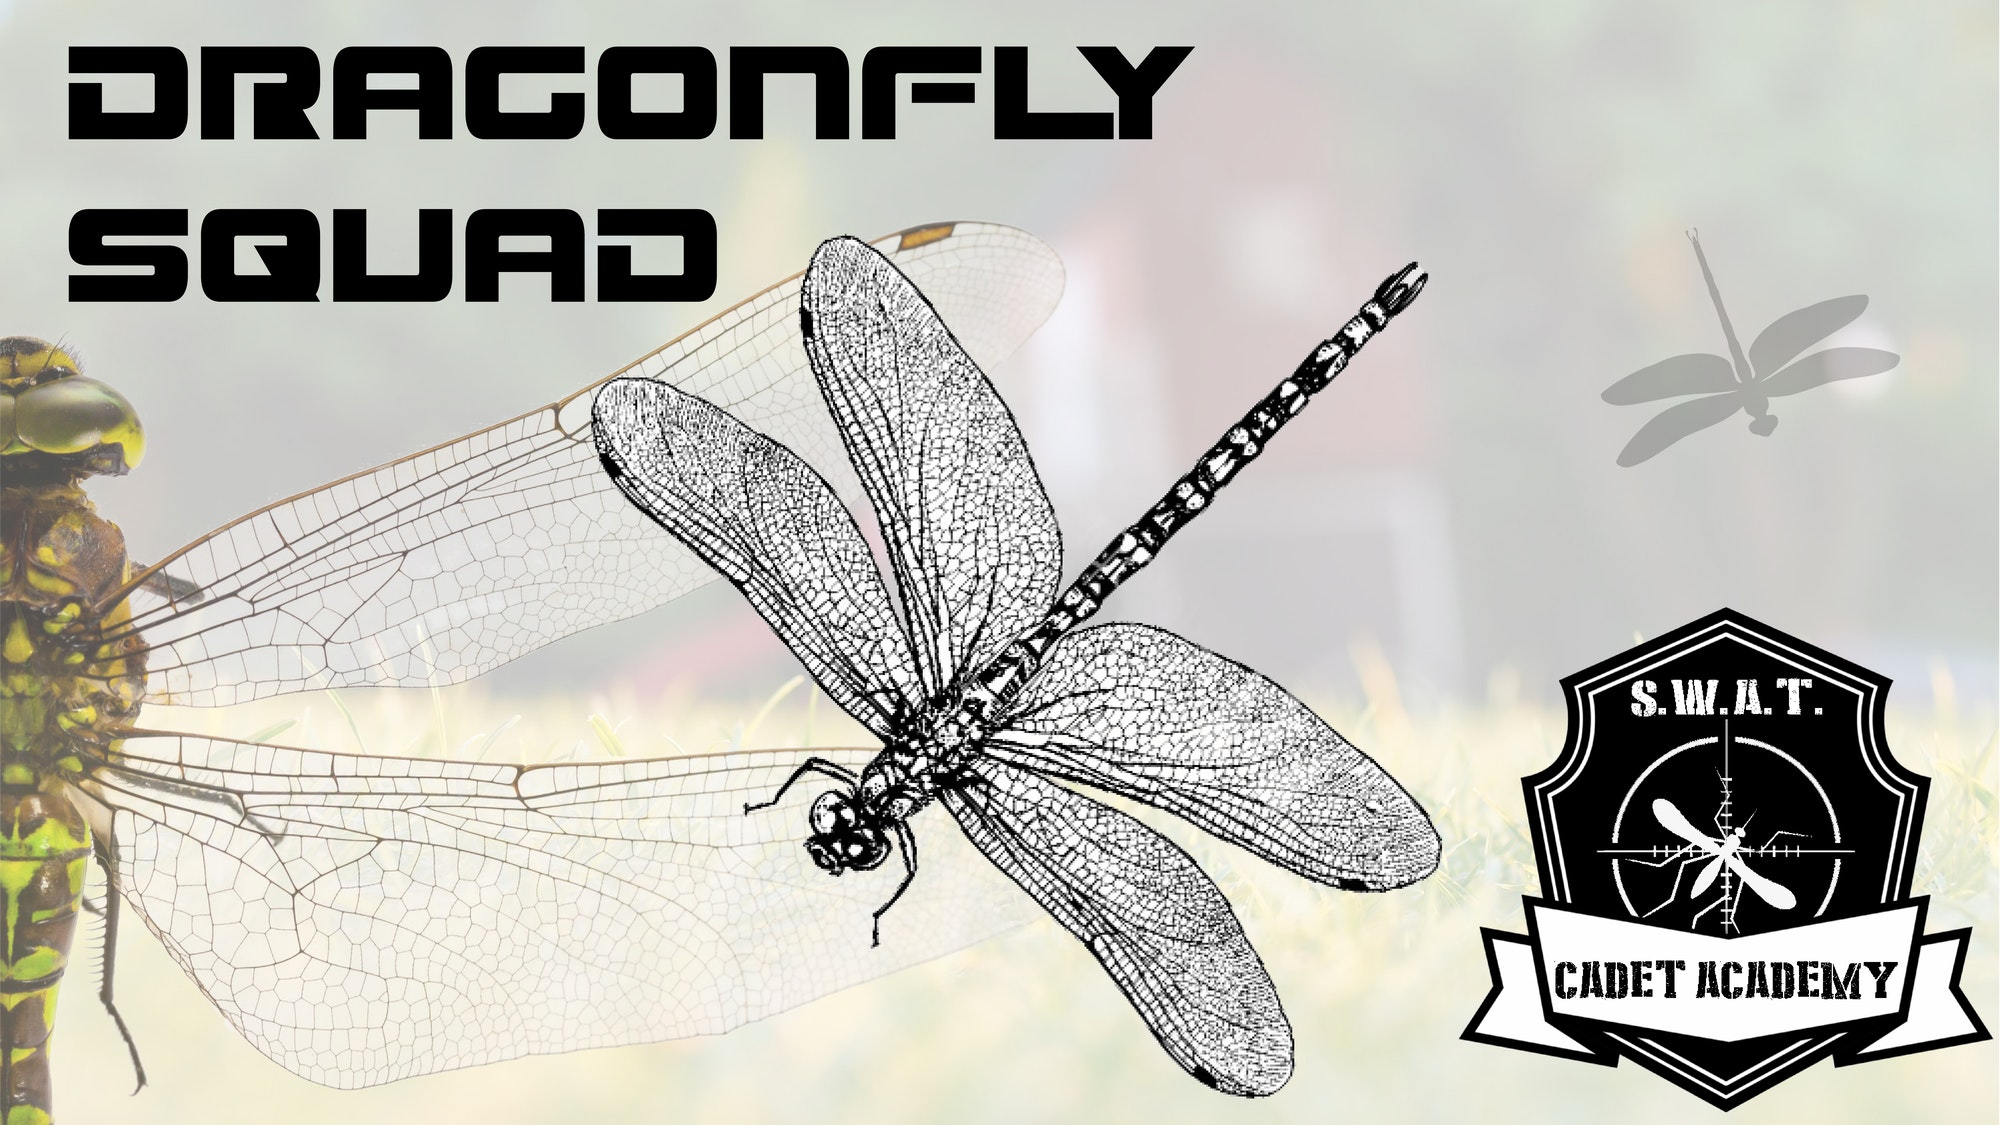 May contain: dragonfly, anisoptera, insect, invertebrate, and animal